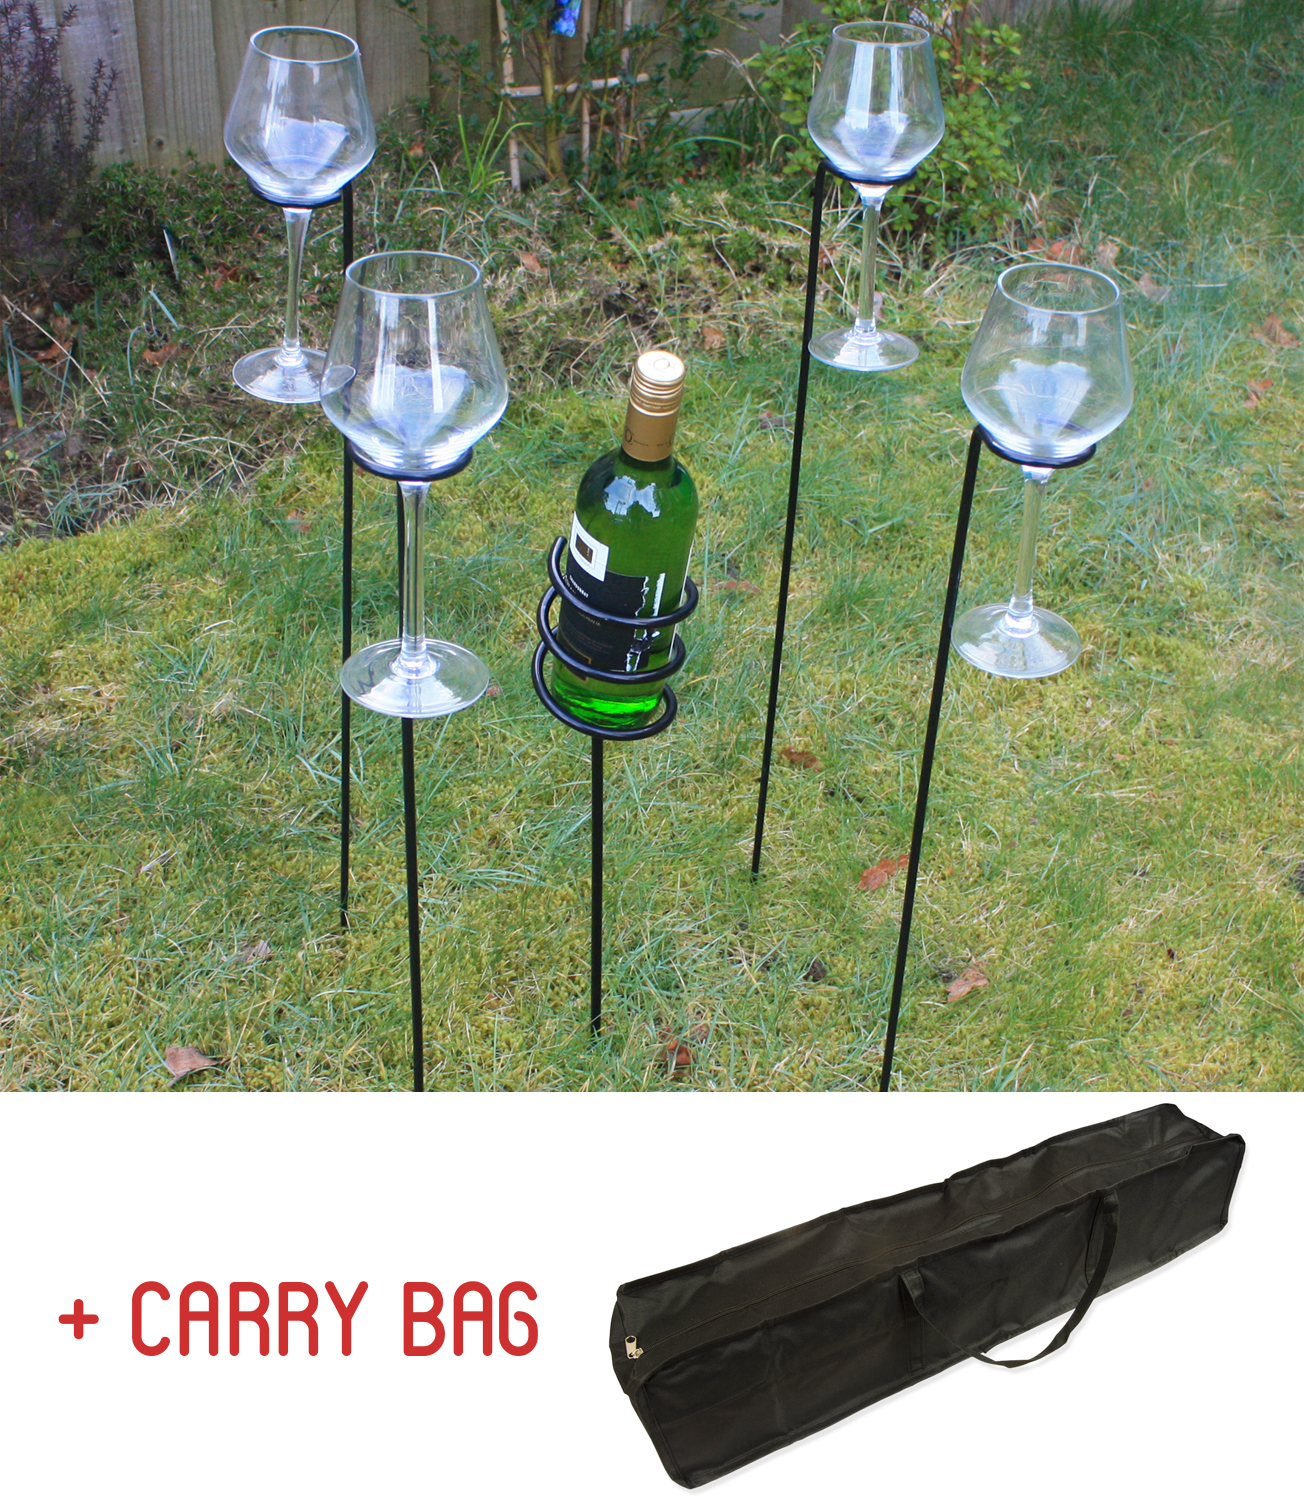 Empty Wine Bottle Holder Woodside Outdoor Wine Bottle And Glass Holder Set With Carry